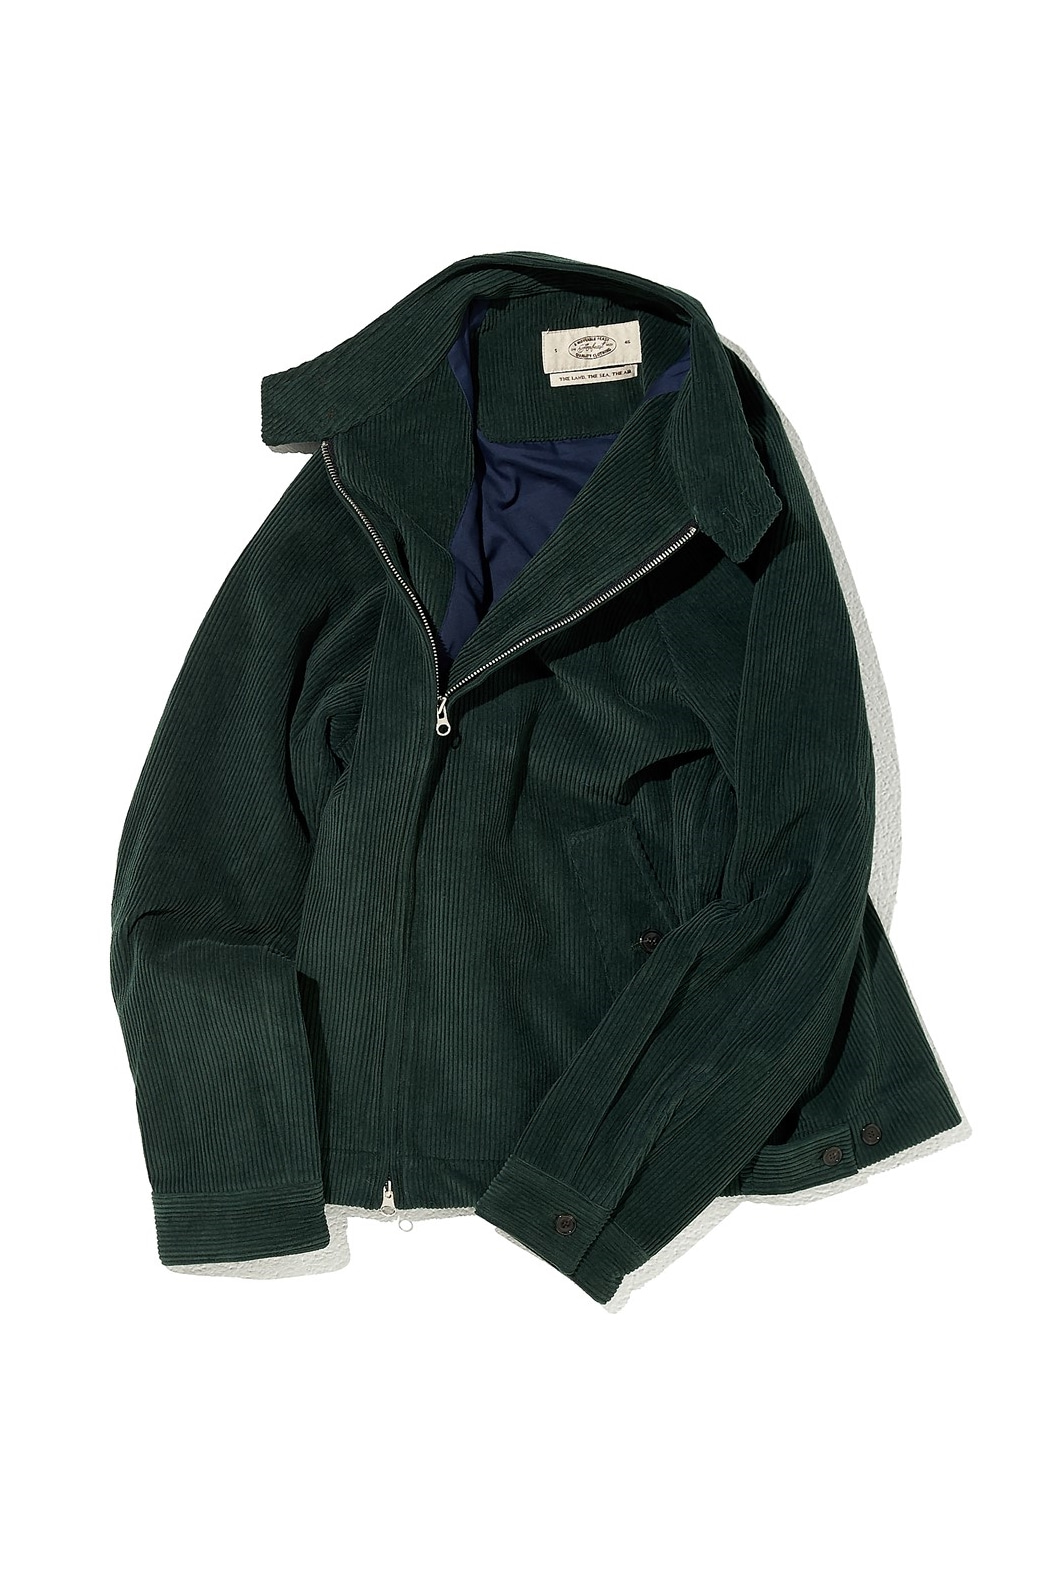 EASY SWING JACKET GREENAMFEAST(암피스트)